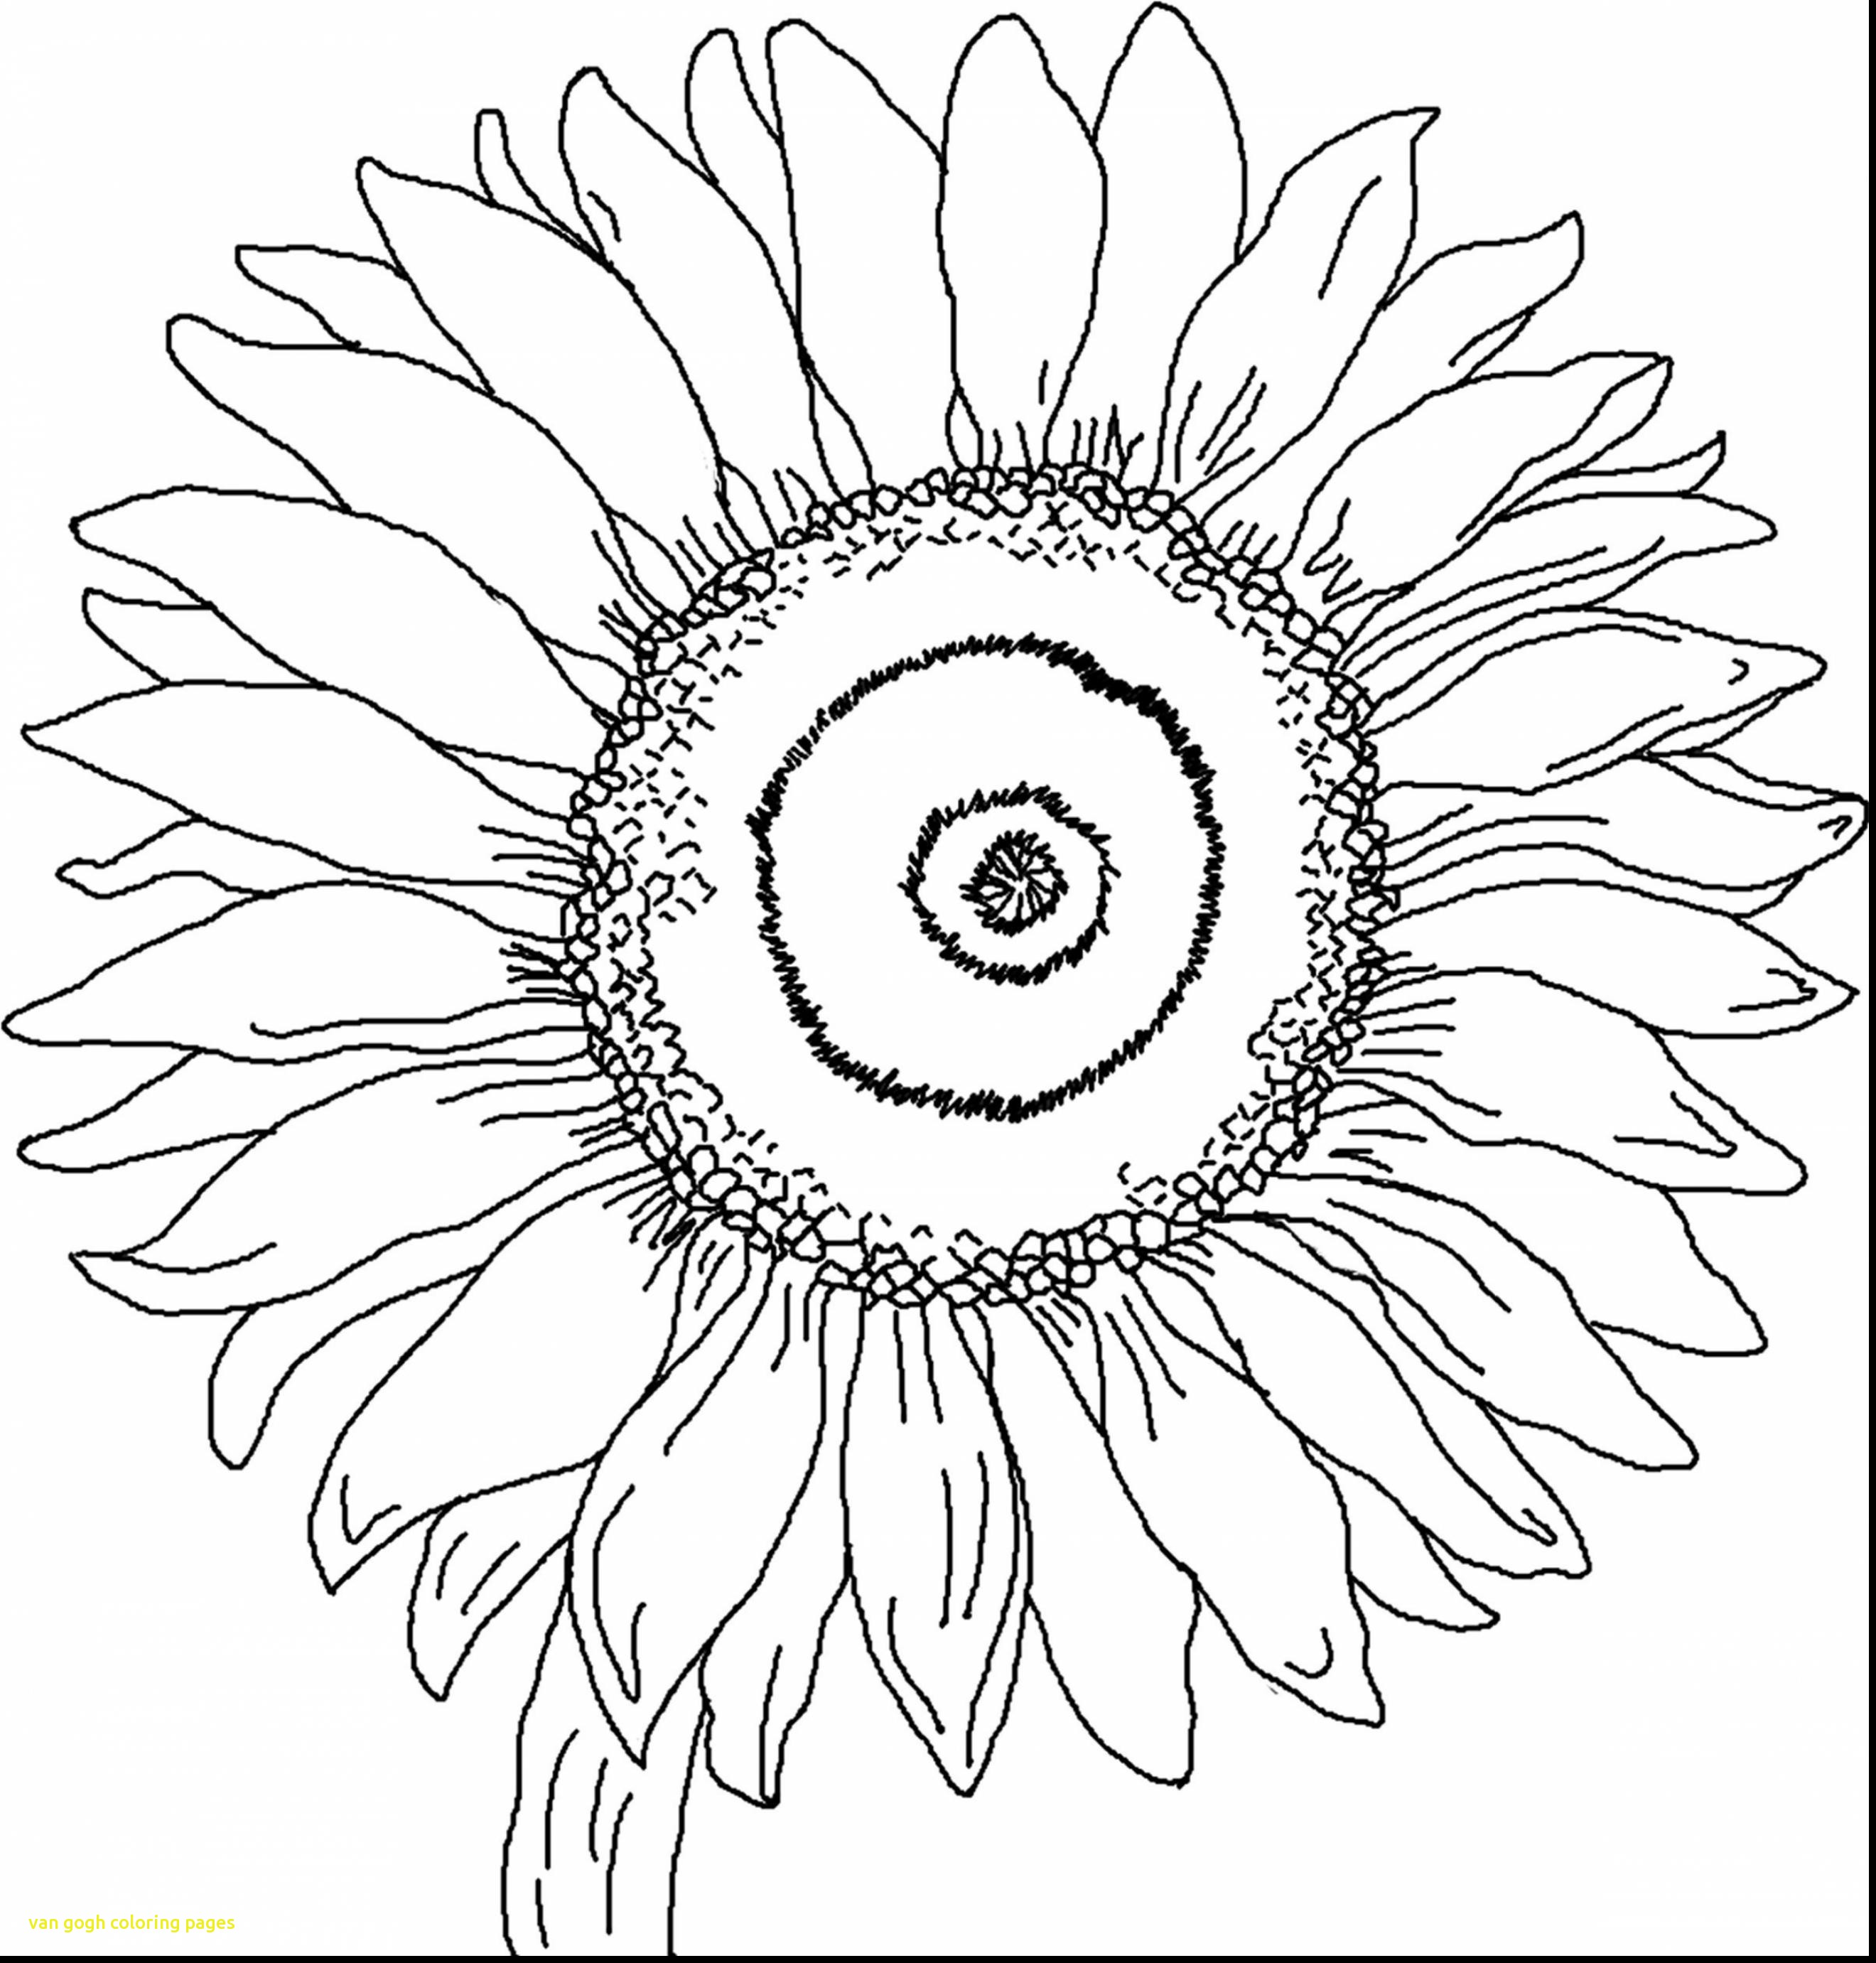 Vincent Van Gogh Coloring Pages At Getdrawings Free Download